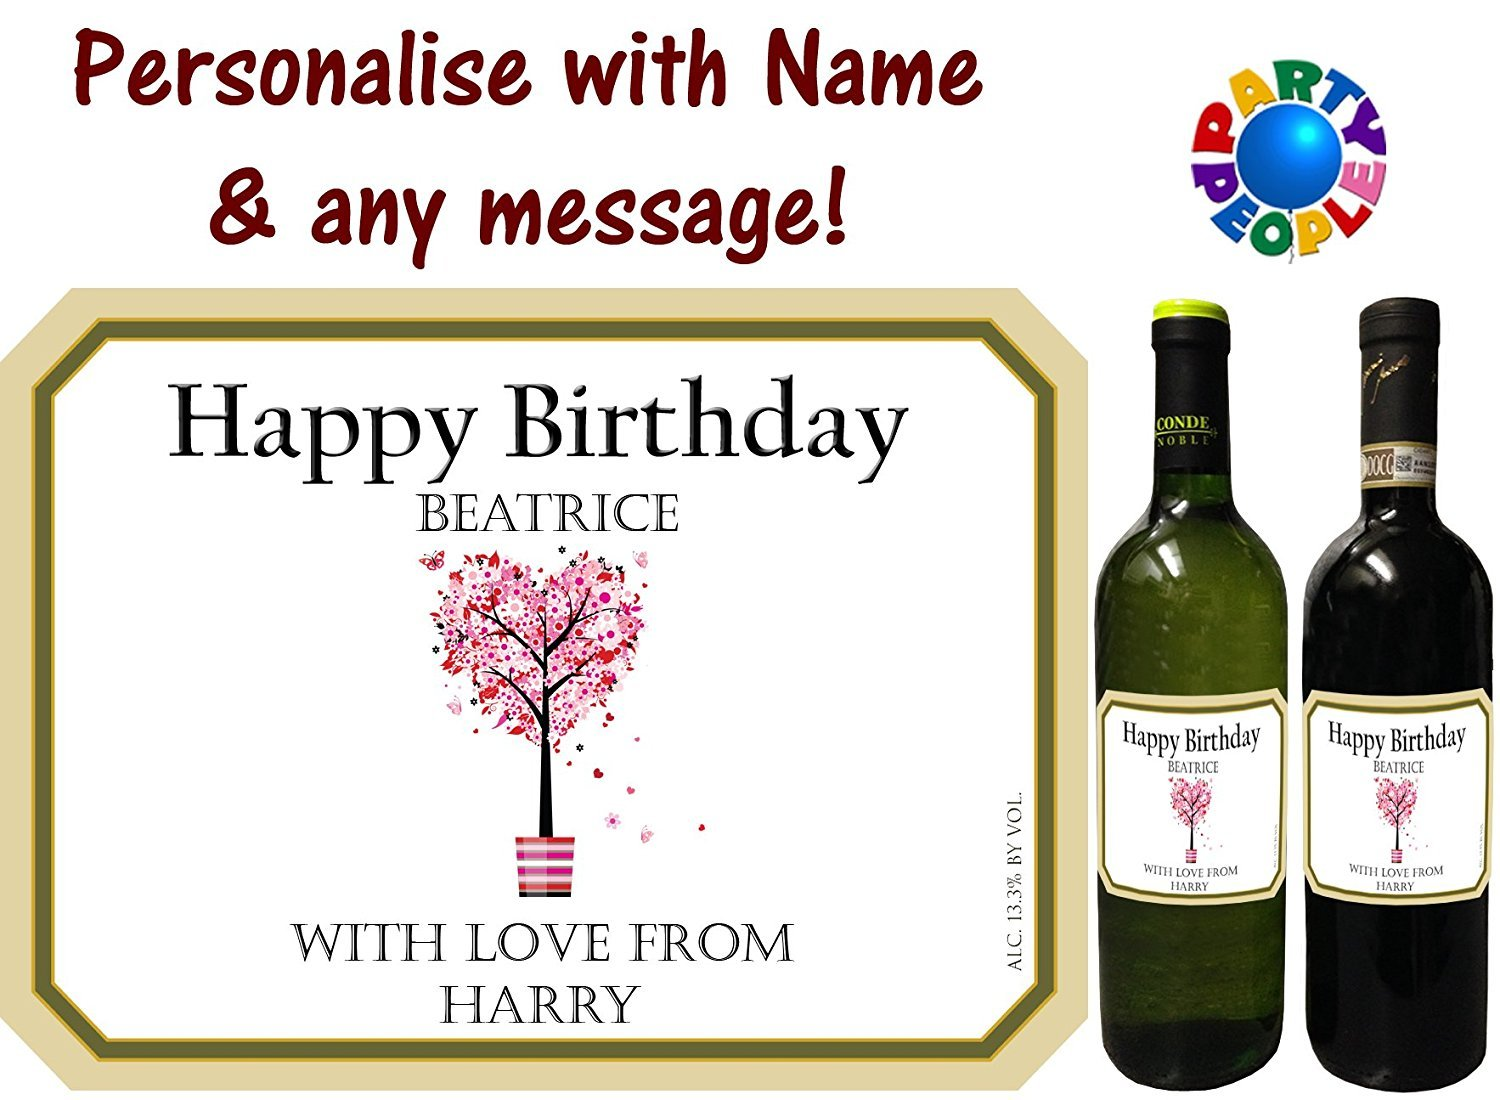 c53c0a69110 PERSONALISED WINE BOTTLE LABEL - ANY MESSAGE AND NAME (Type 3)   Amazon.co.uk  Toys   Games